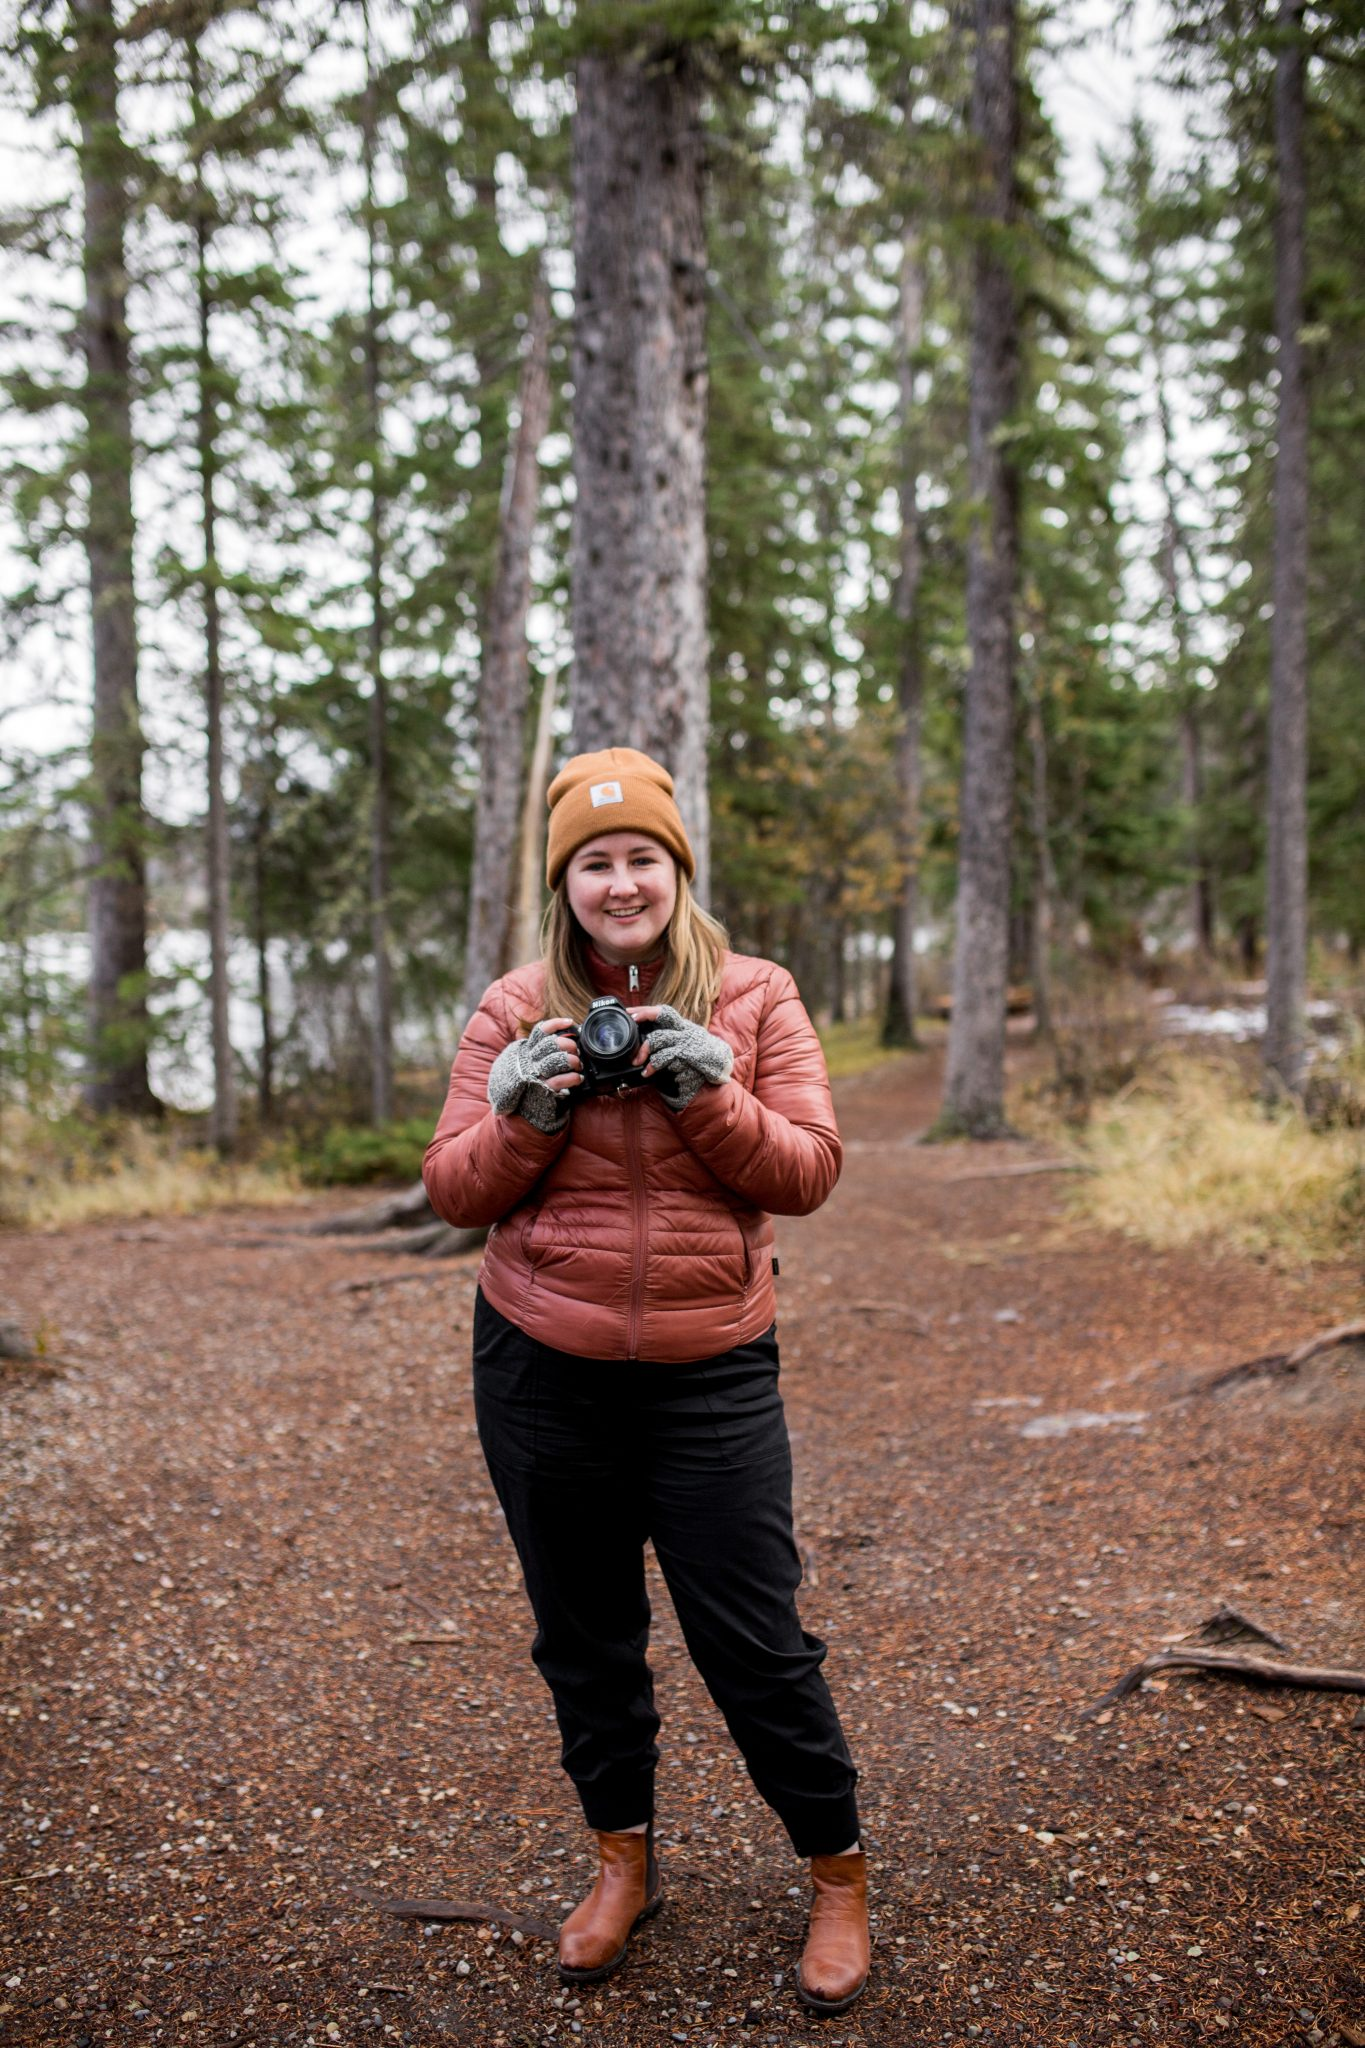 Janelle Dudzic of Janelle Dudzic Photography poses with her camera in an area of Pine trees at Pyramid Lake in Jasper National Park